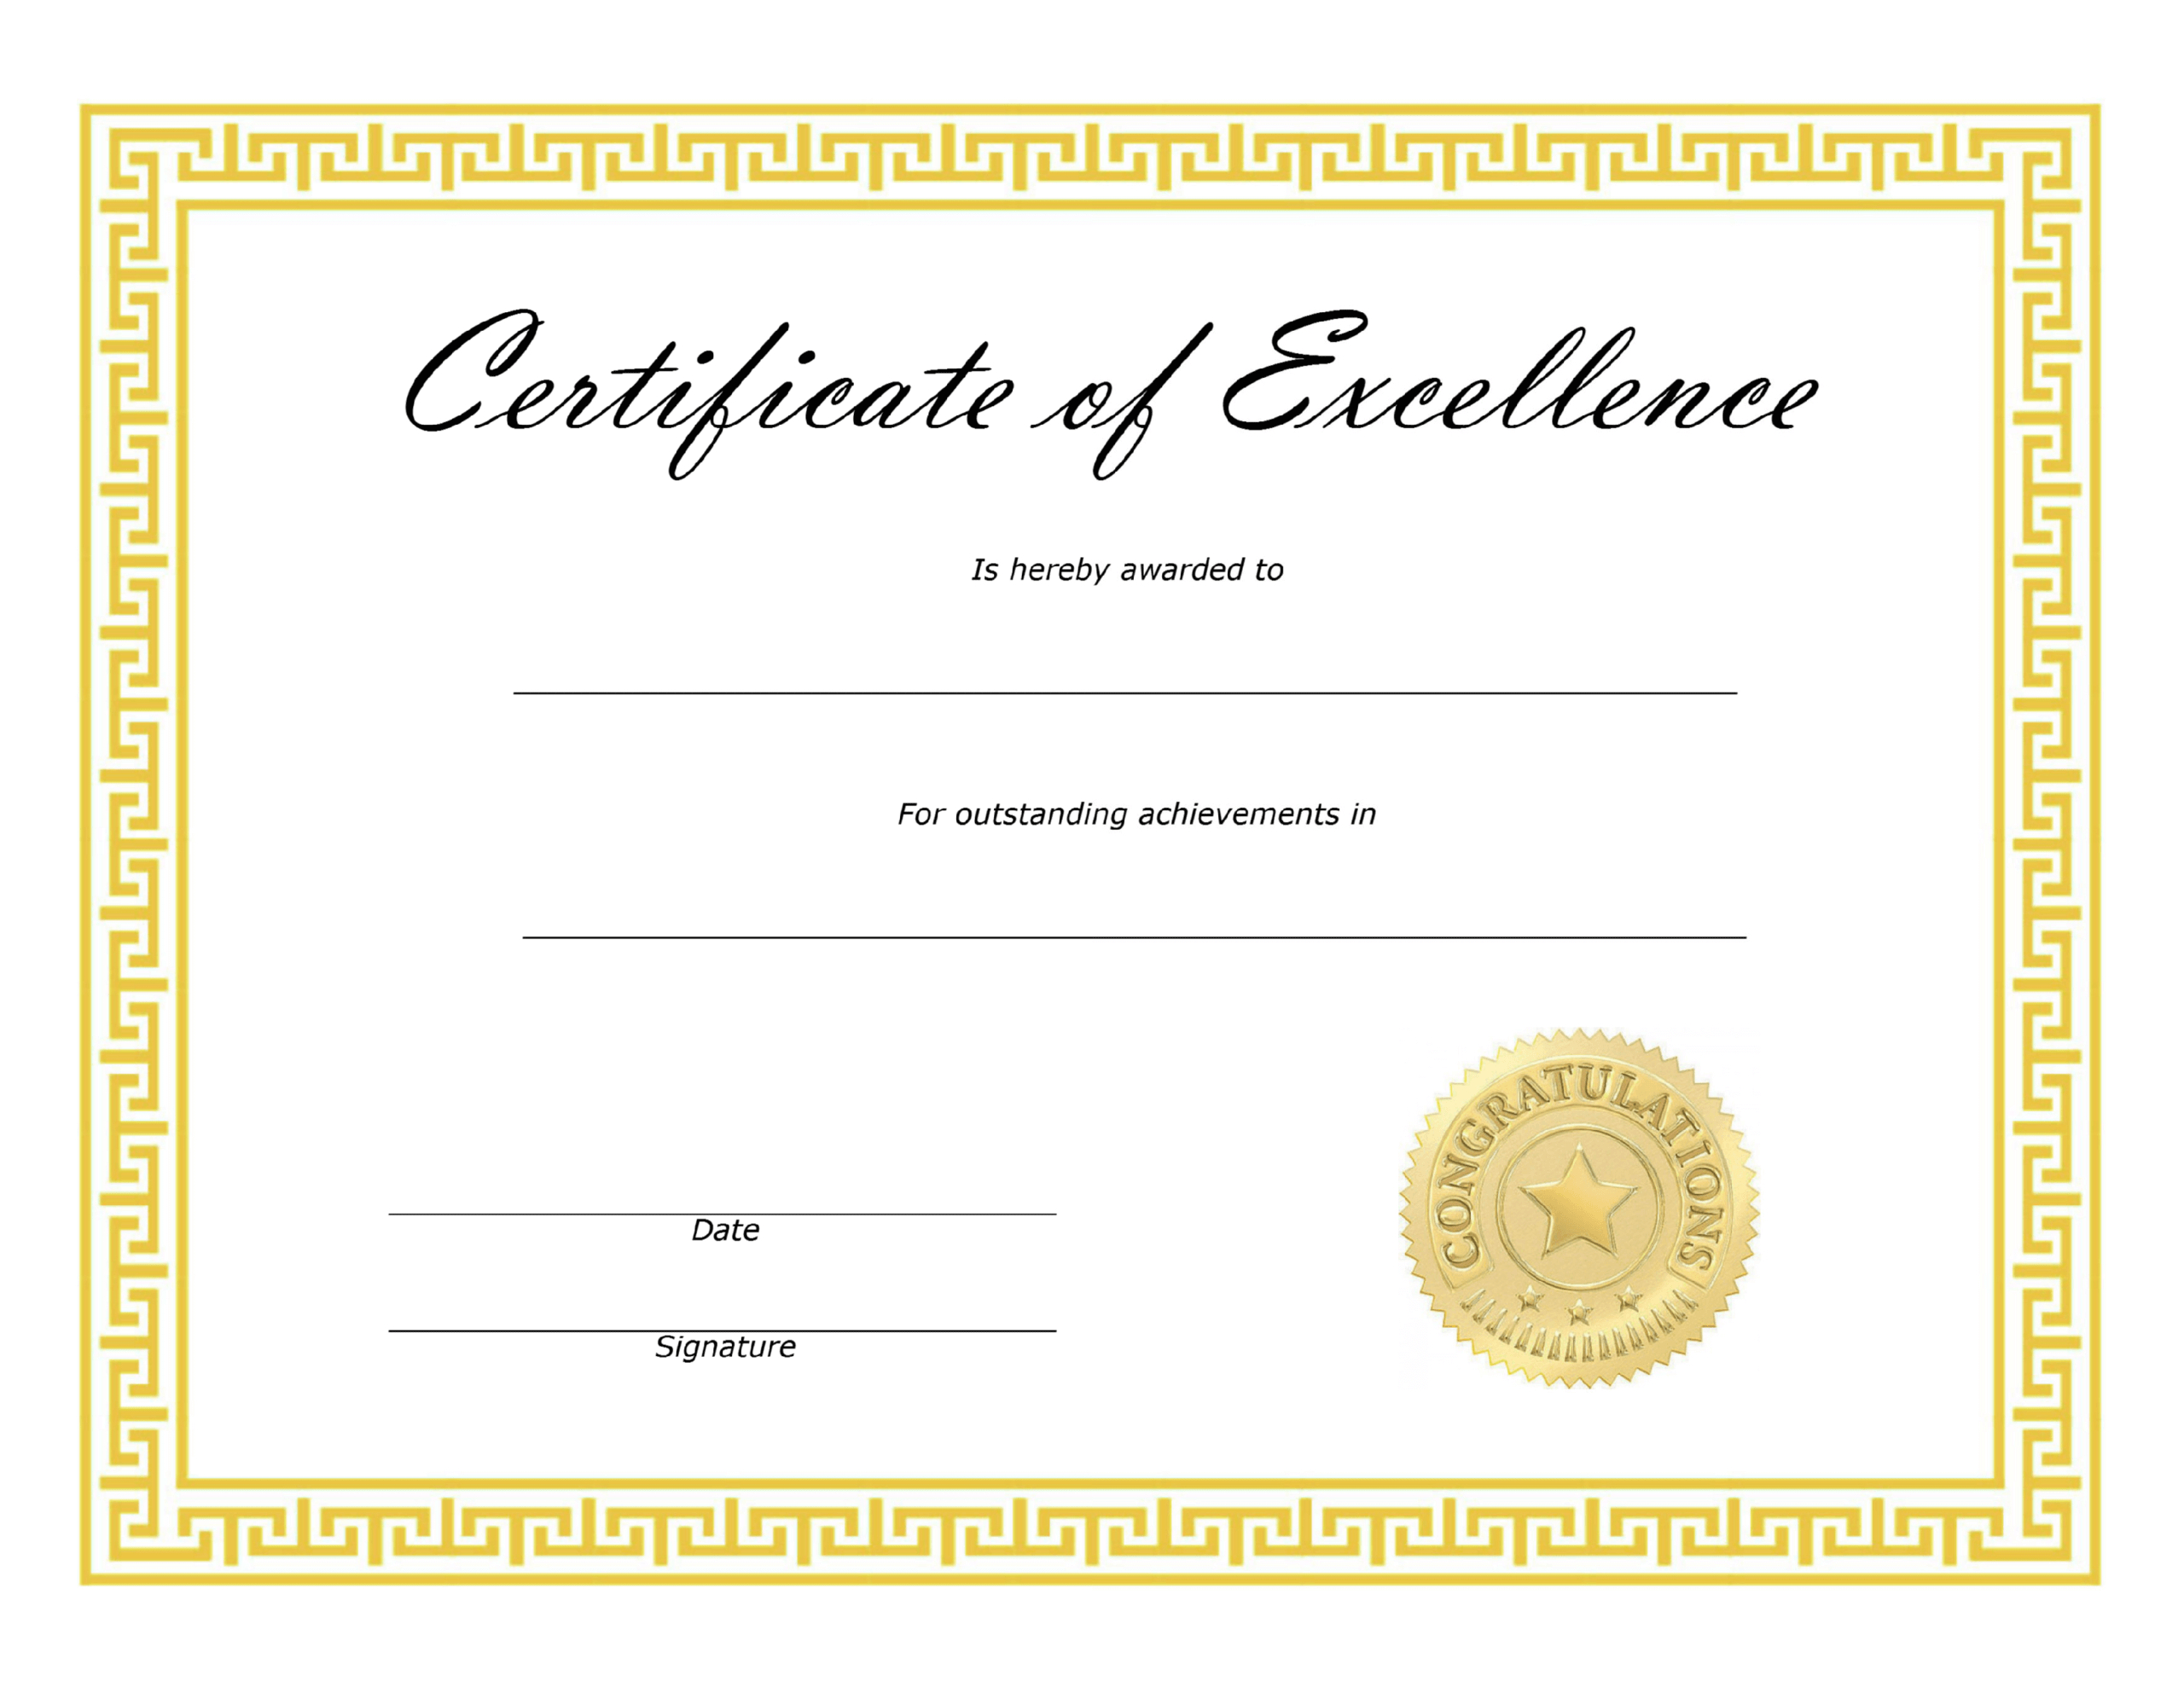 New Award Of Excellence Certificate Template With Regard To Award Of Excellence Certificate Template